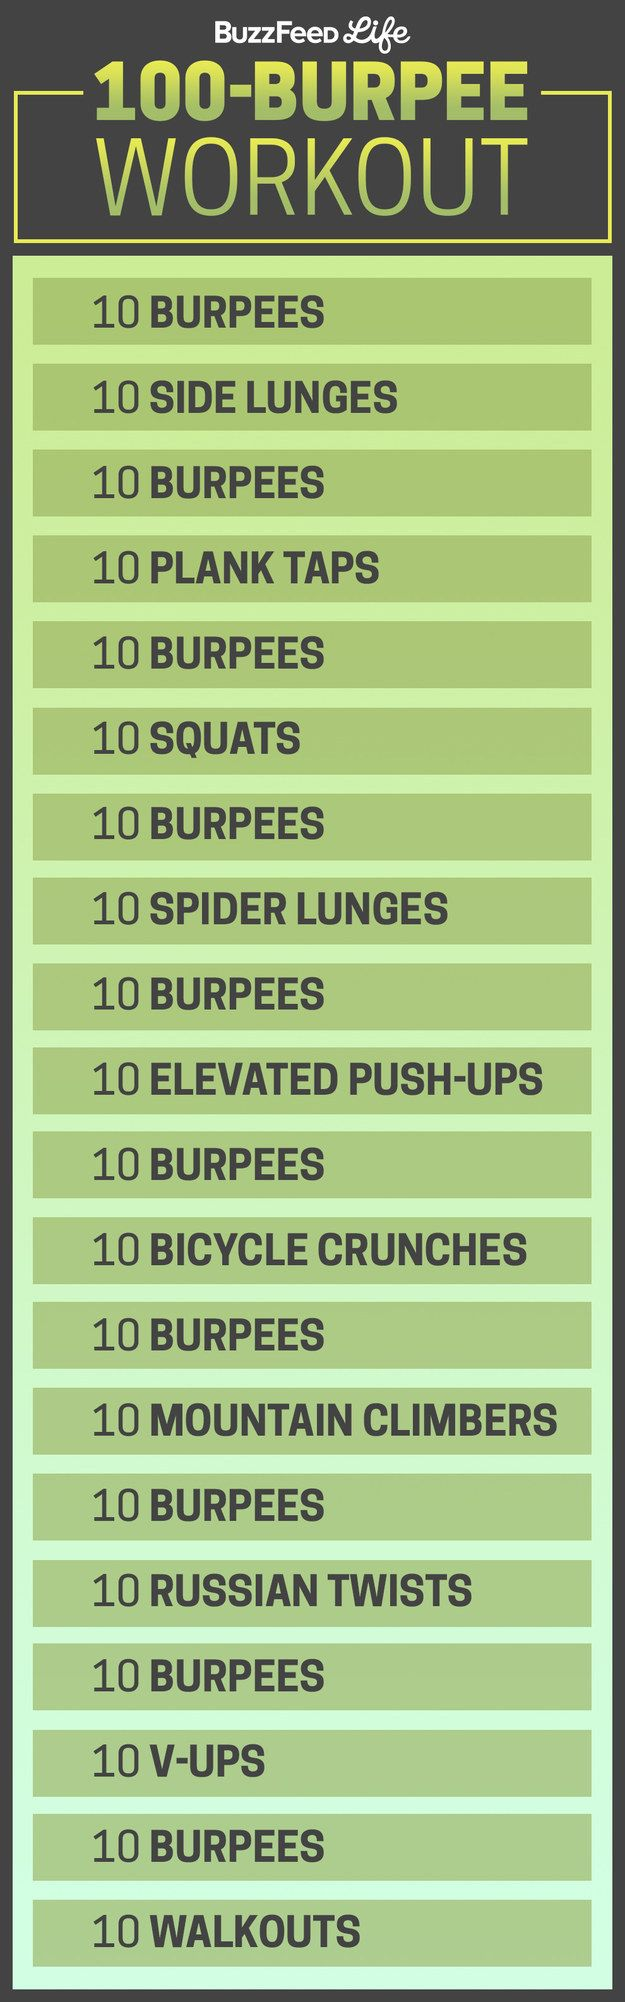 Burn all of the calories, no equipment needed.